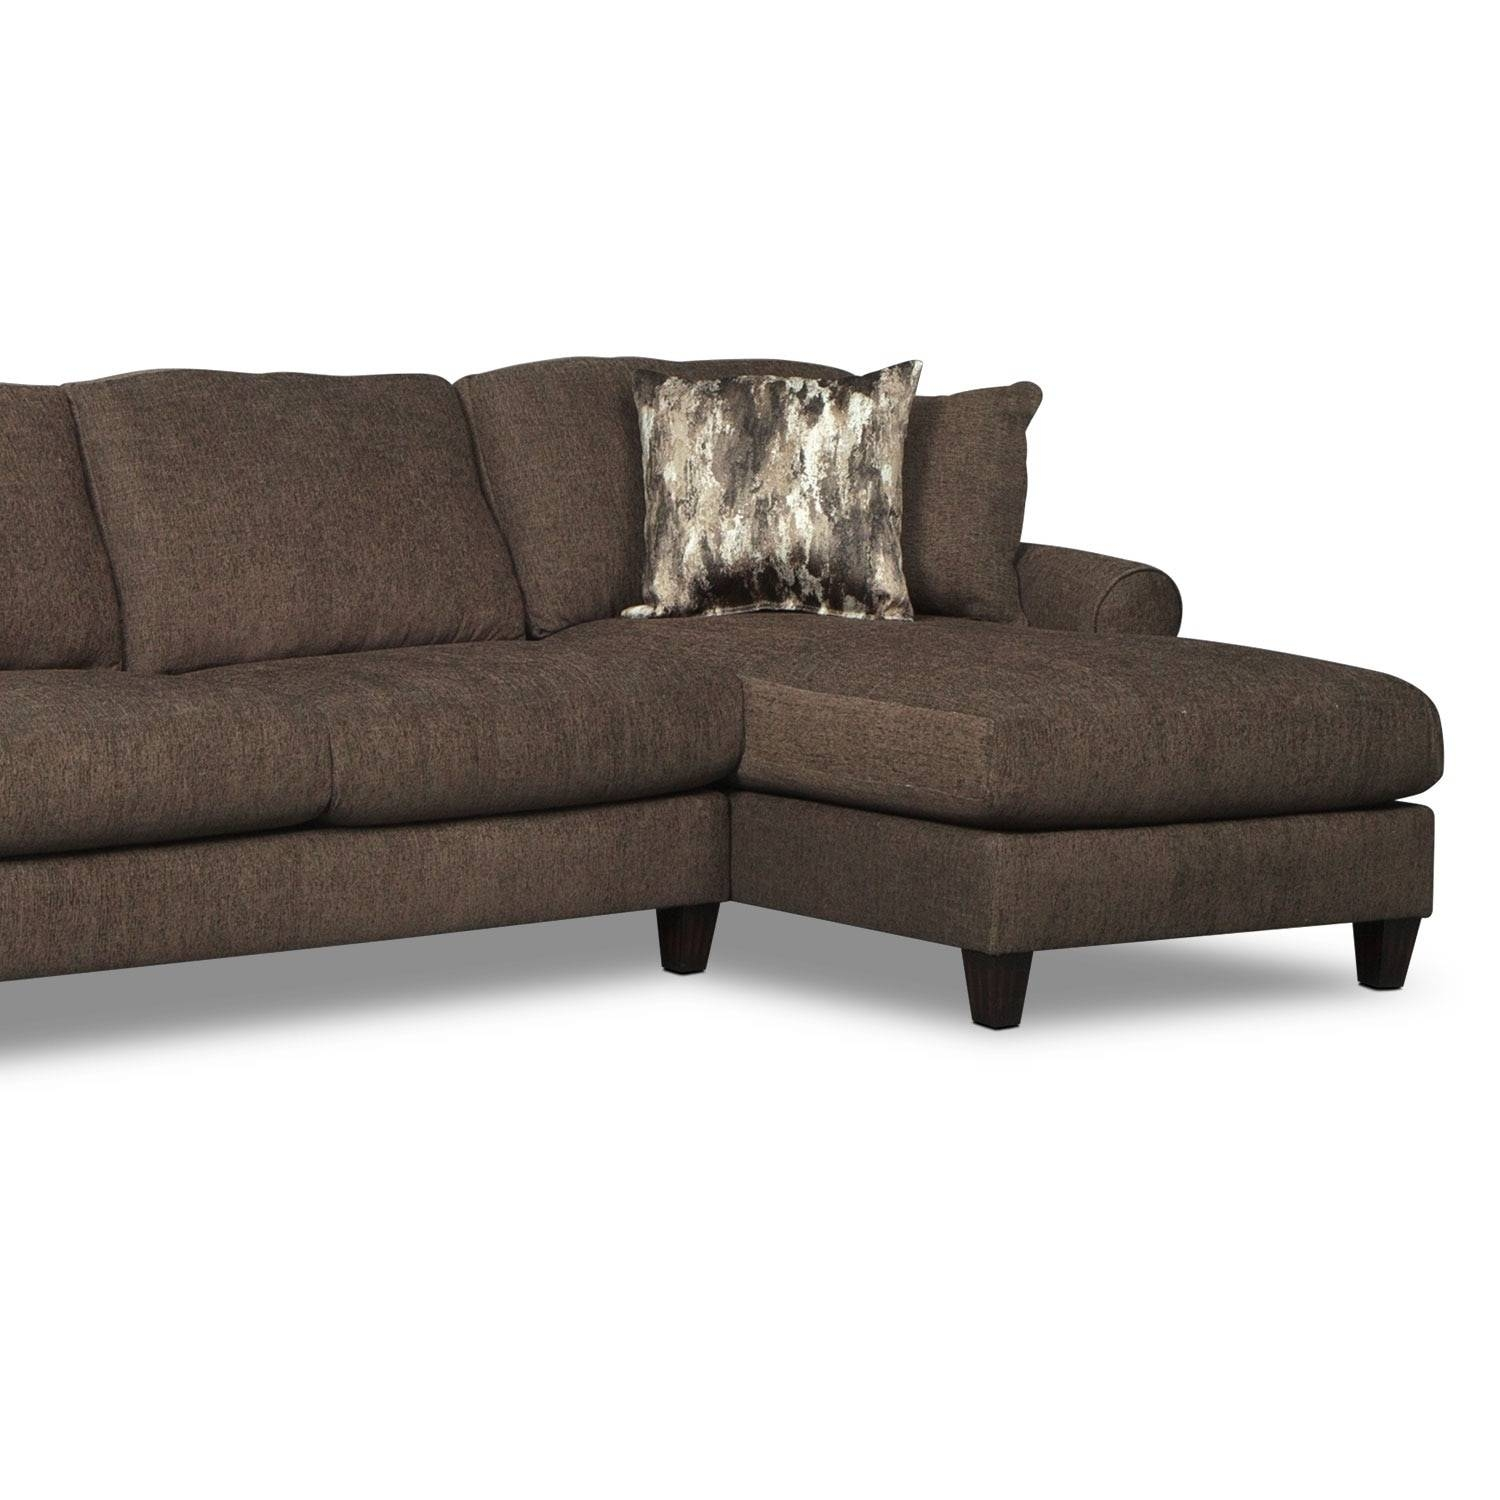 Karma 3-Piece Sectional With Right-Facing Chaise And Left-Facing within Sectional Sofa With Cuddler Chaise (Image 10 of 25)